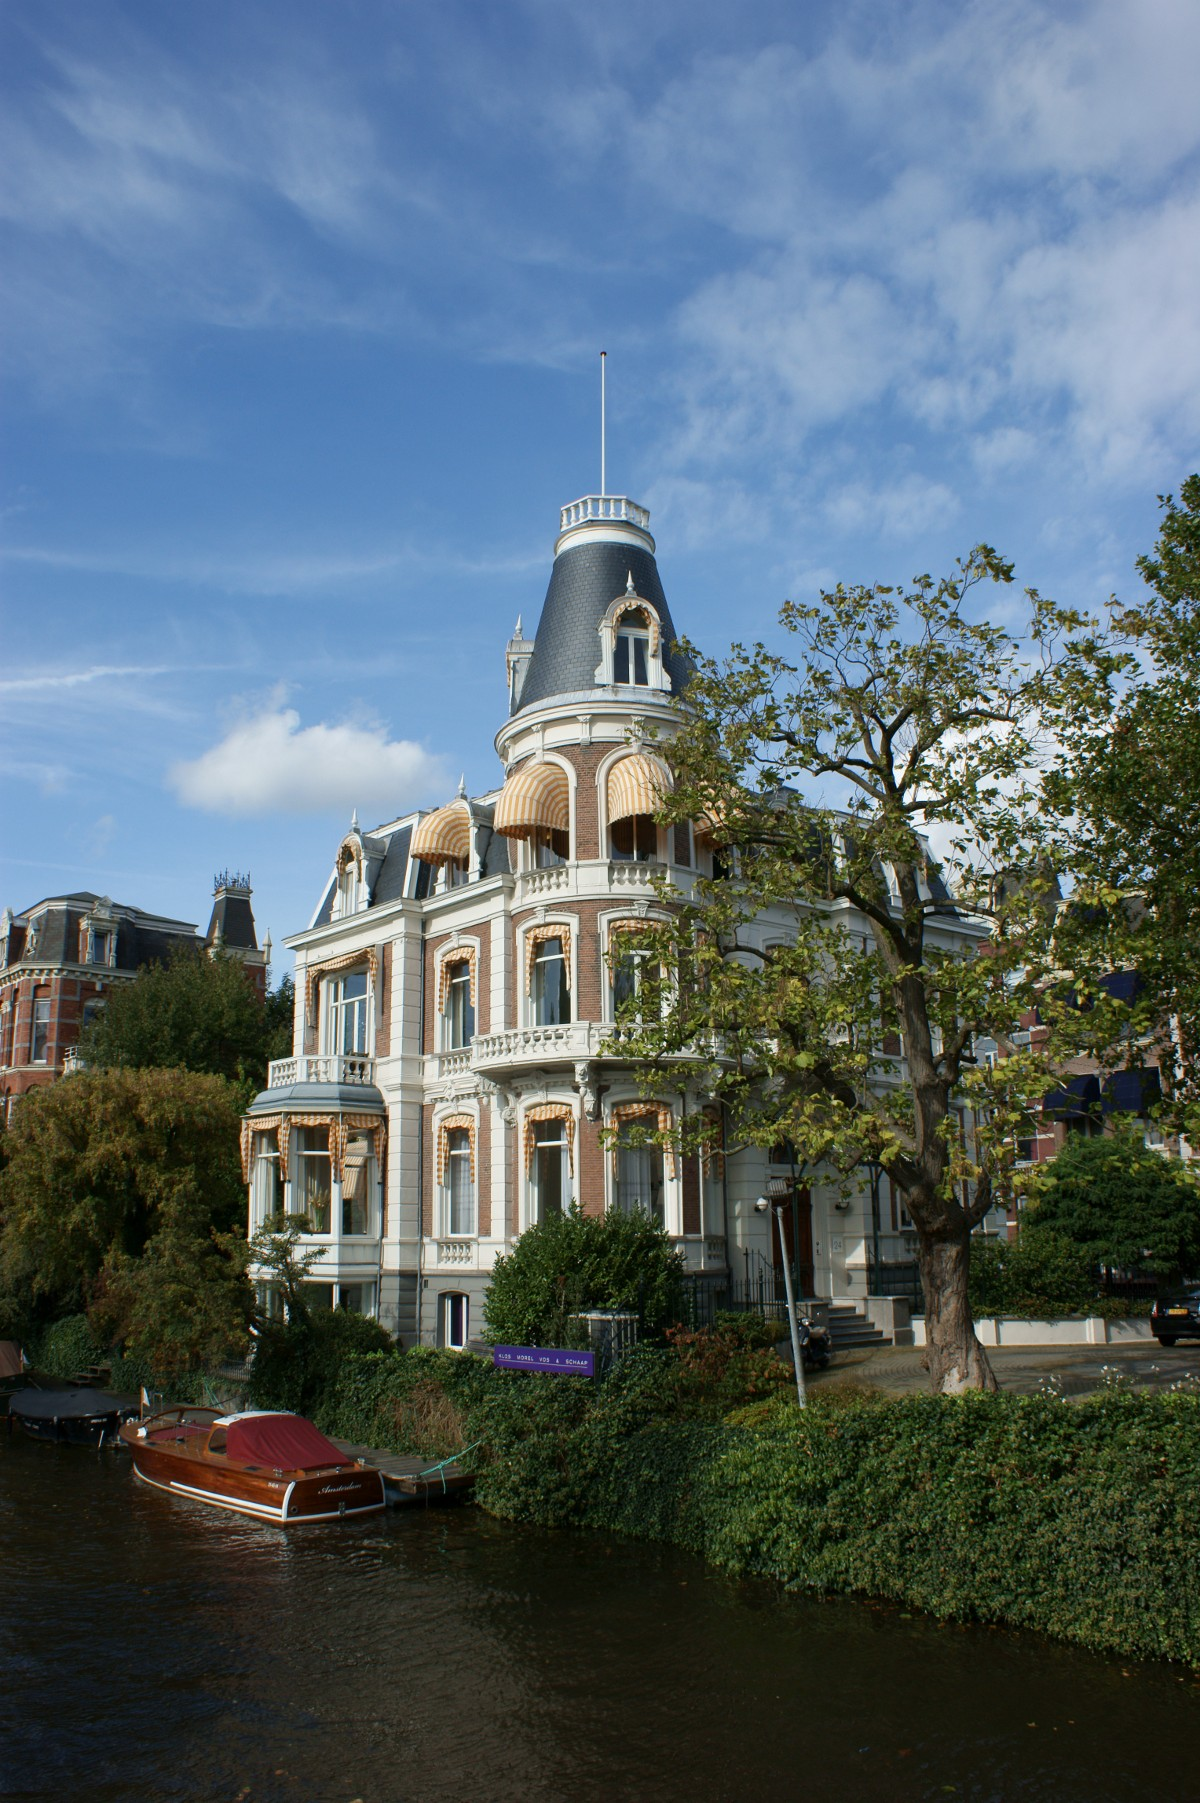 http://www.images.scottphotographics.com/shot-of-the-day/%235/amsterdam-netherlands03.jpg